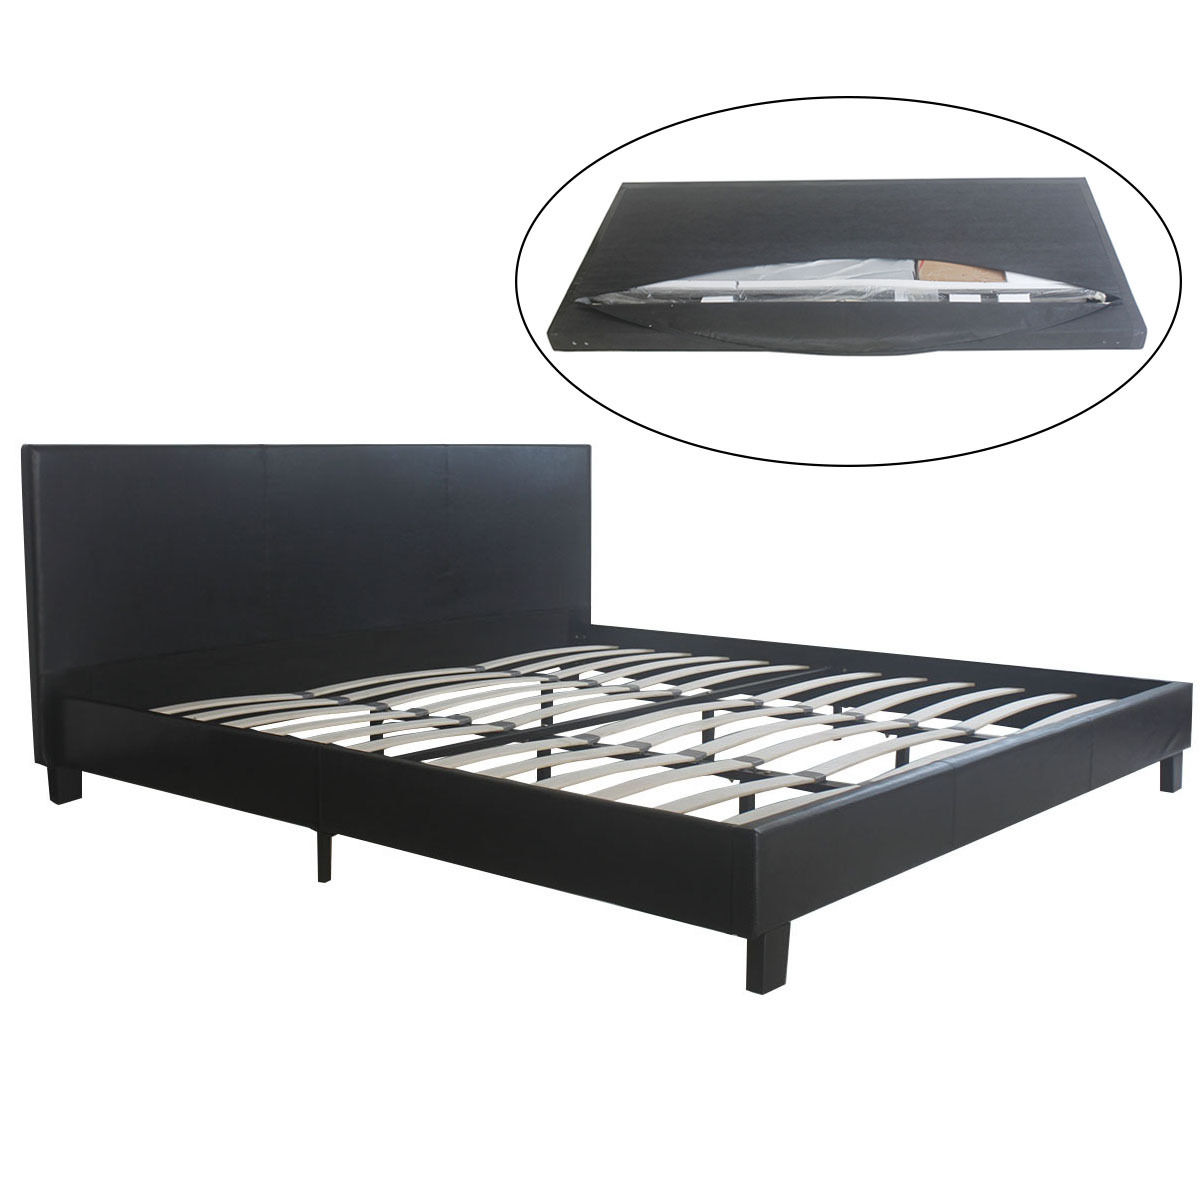 costway faux leather platform bed king size wooden slats upholstered headboard black